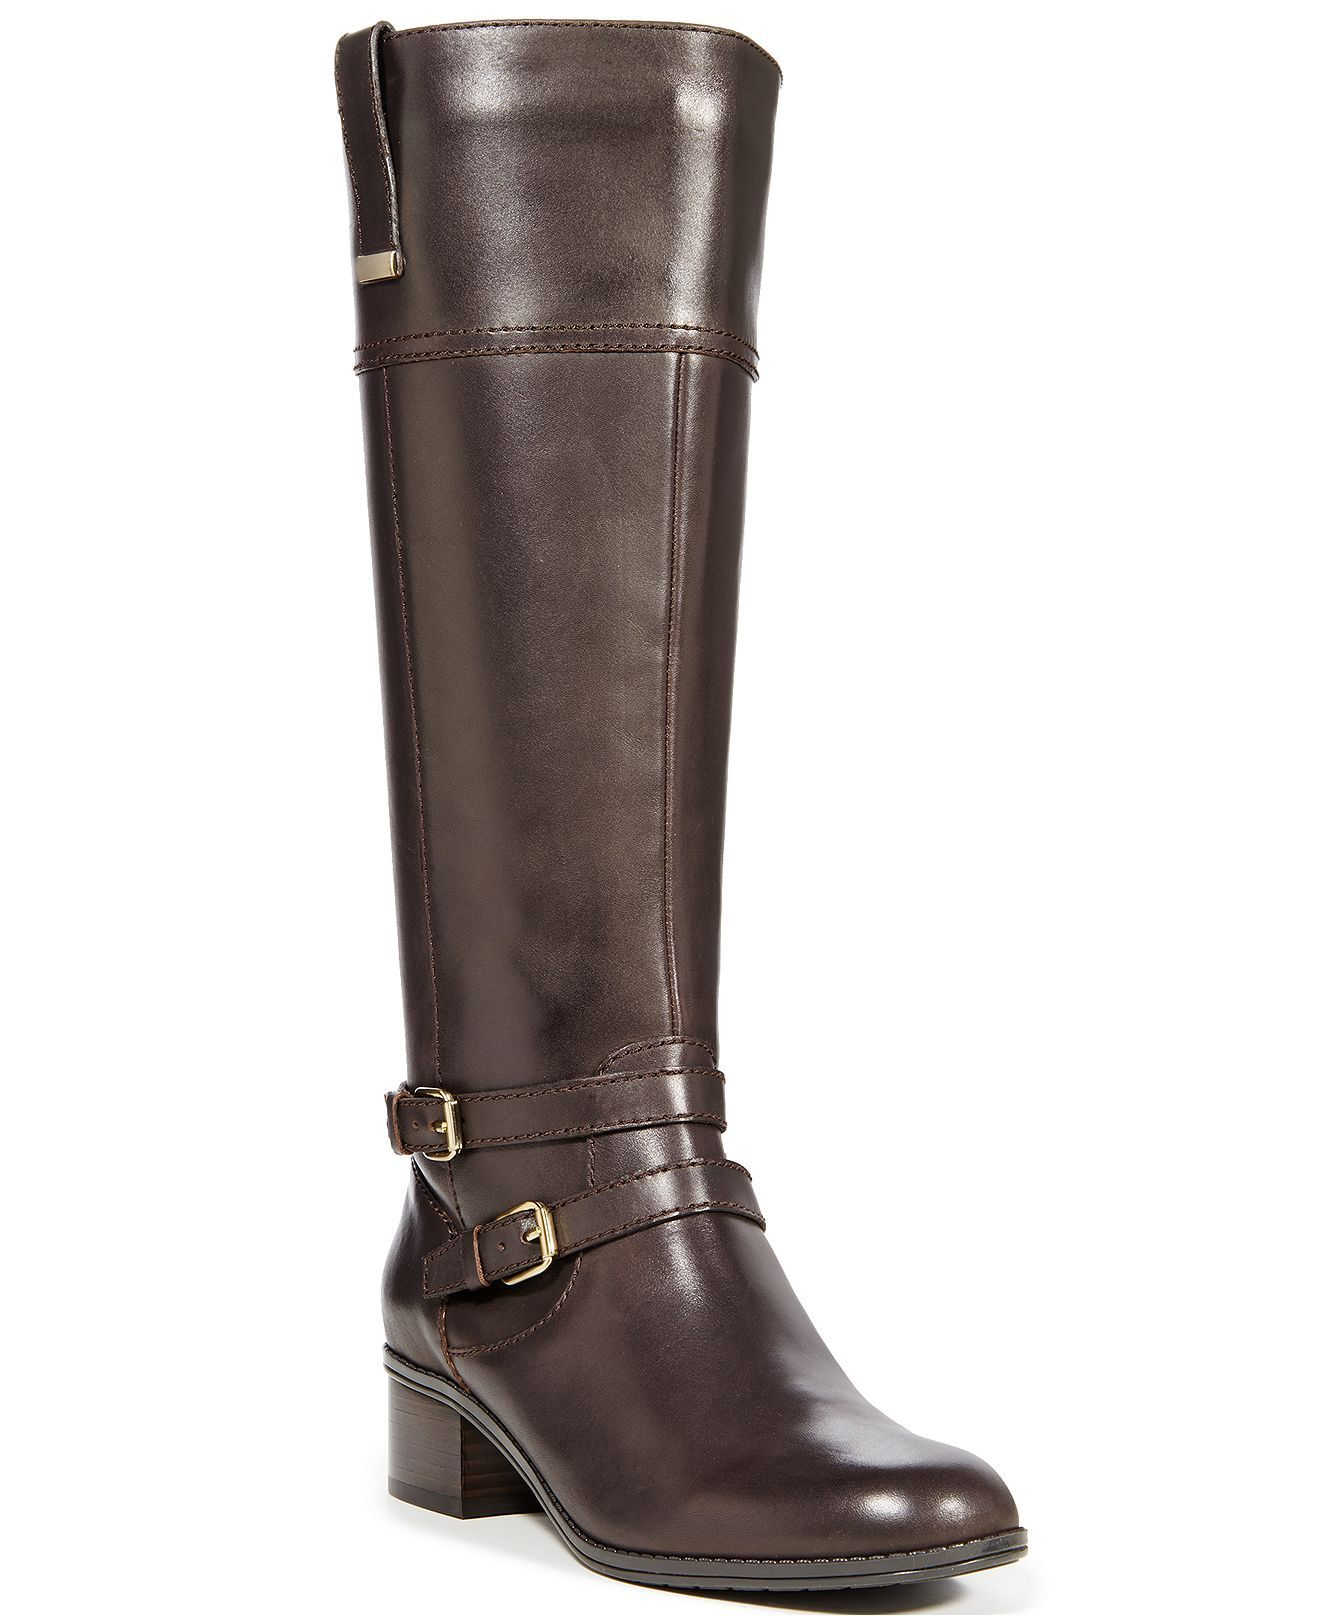 c32a4febee4 Bandolino Carlotta Tall Riding Boots - A Macy's Exclusive - Boots ...